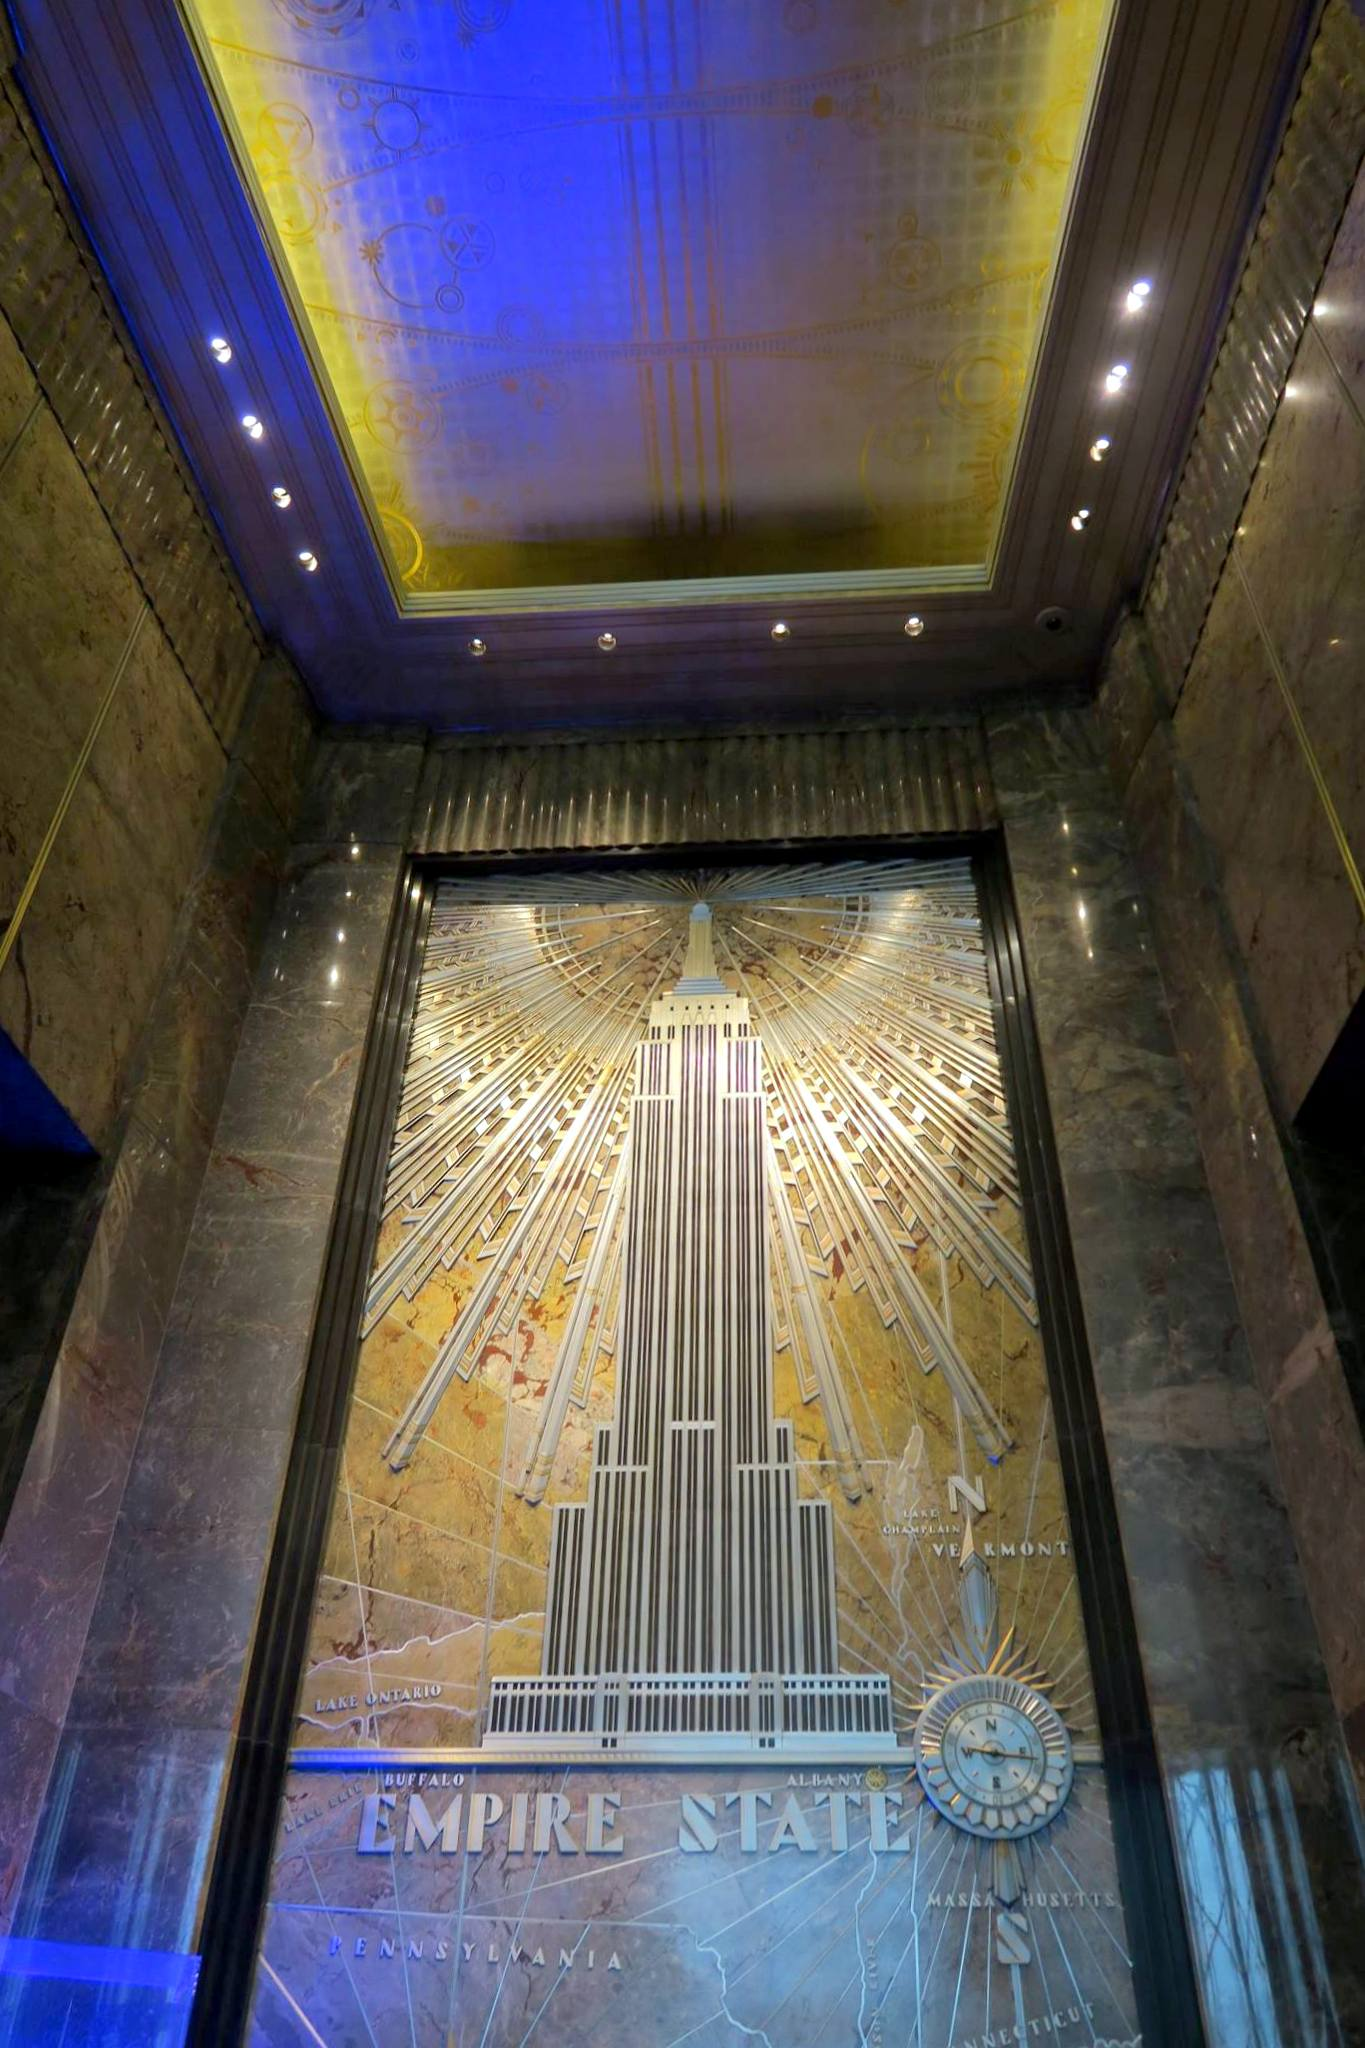 Entrance to the Empire State Building